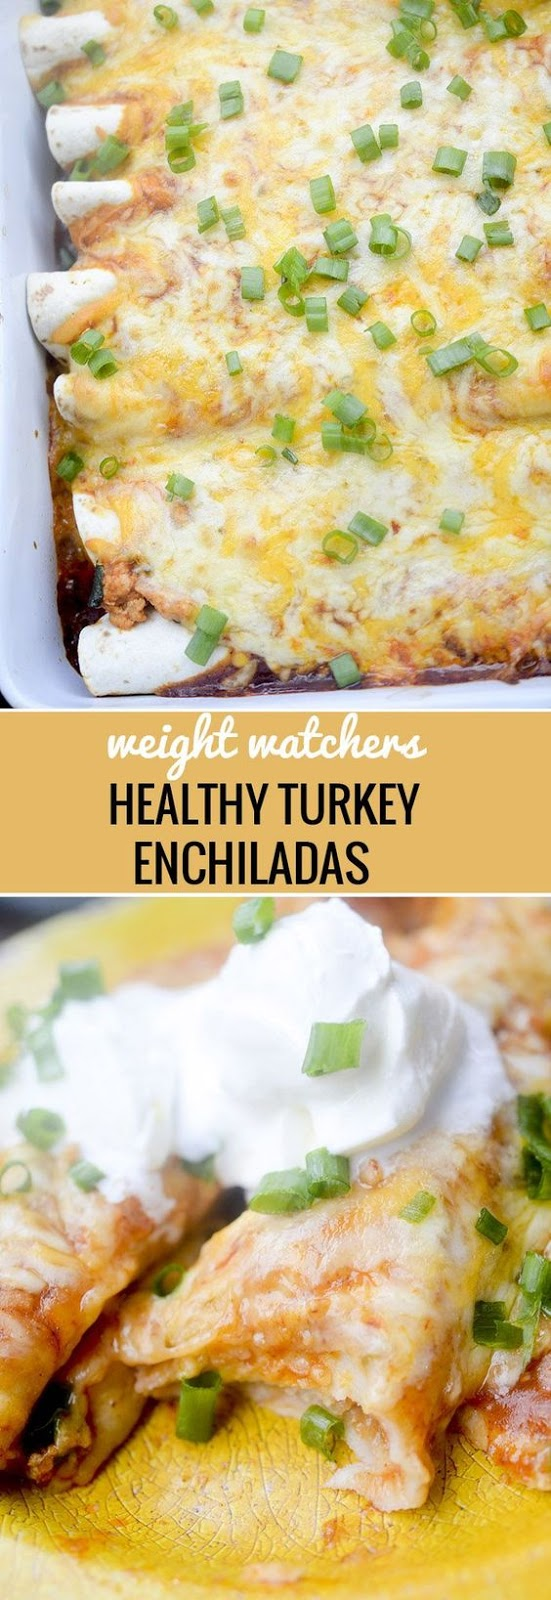 HEALTHY BAKED TURKEY ENCHILADAS